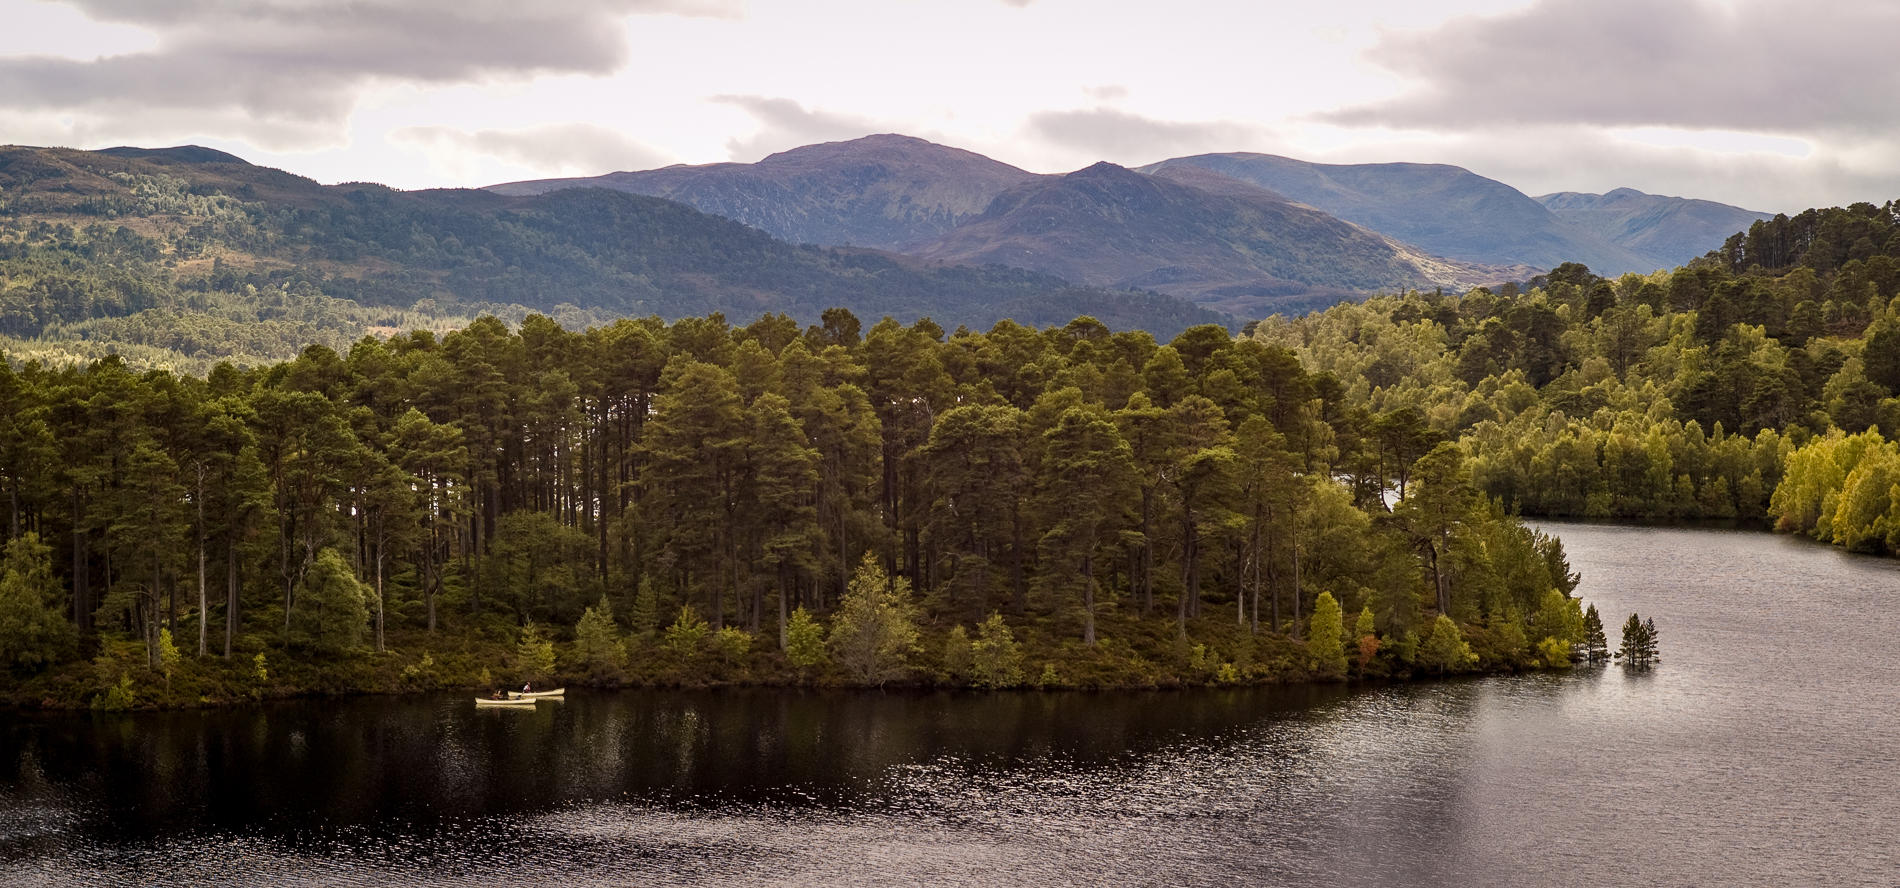 Loch Affric, Scotland : landscapes : TIMOTHY FLOYD PHOTOGRAPHER, NATURE PHOTOGRAPHY, PHOTO ESSAYS, PHOTOJOURNALISM